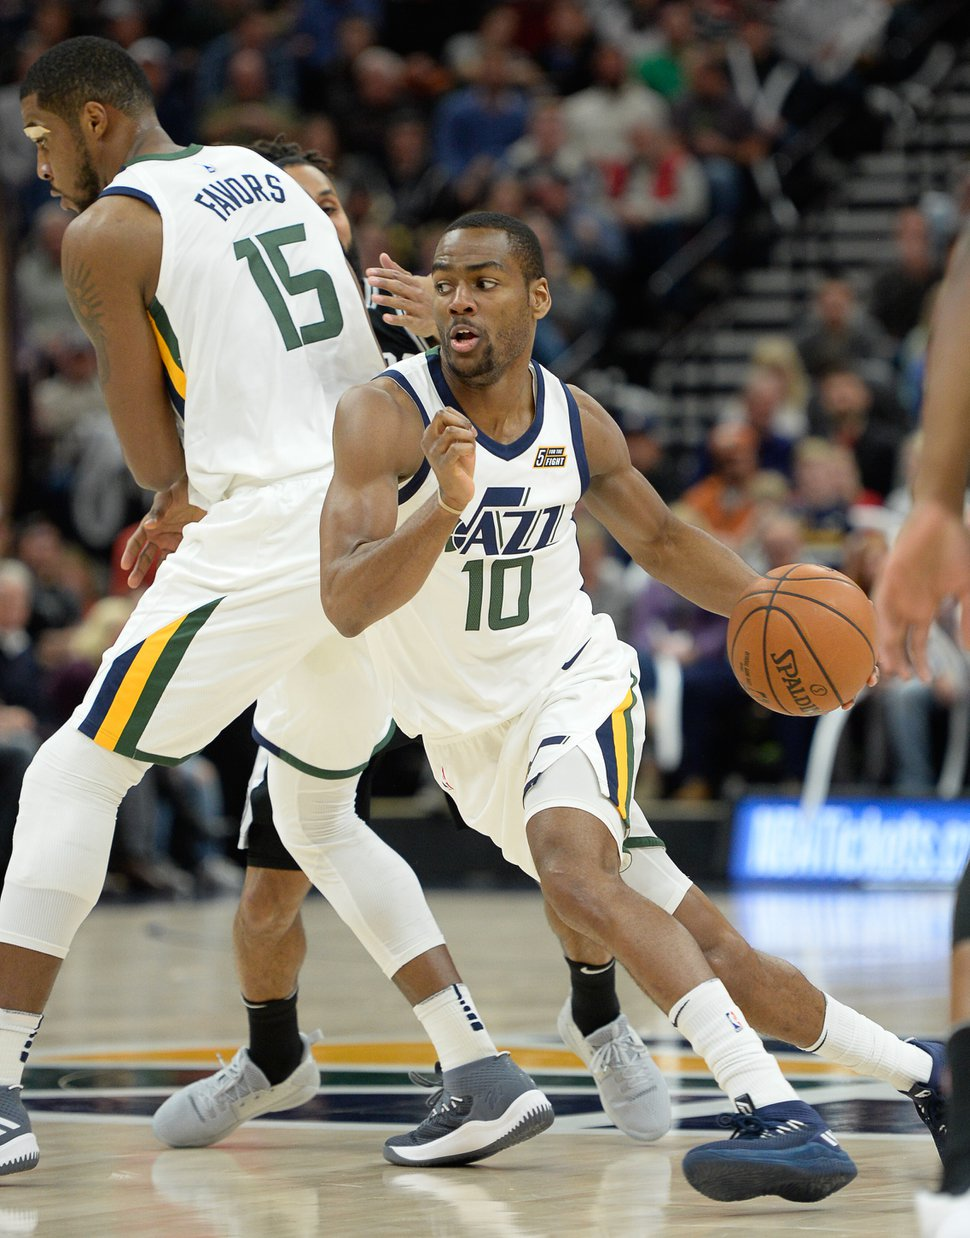 (Francisco Kjolseth | The Salt Lake Tribune) Utah Jazz guard Alec Burks (10) makes his way to the basket against the Spurs during the first quarter of an NBA basketball game in Salt Lake City, Thursday, Dec. 21, 2017.